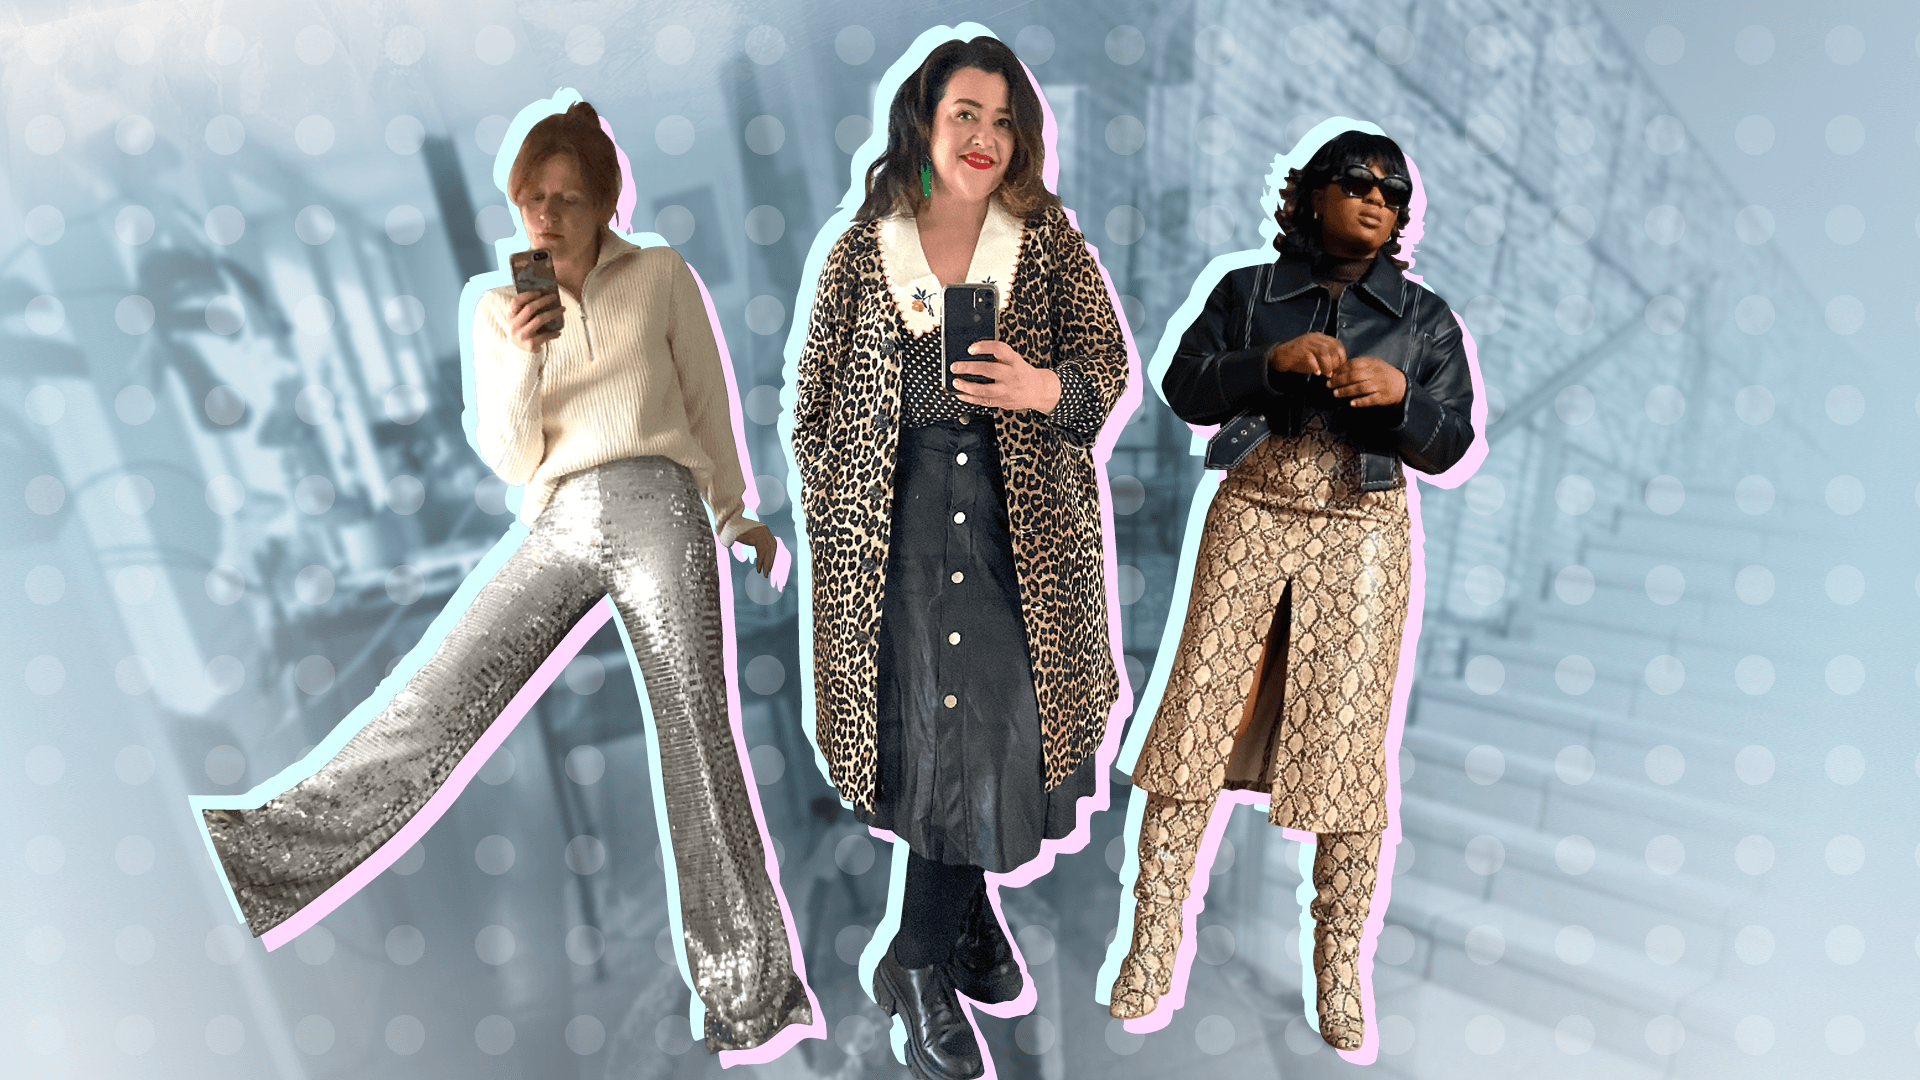 Sarah Macken sits down with three style loving women to hear about what outfits they're planning for the big return, and where we can get our hands on them